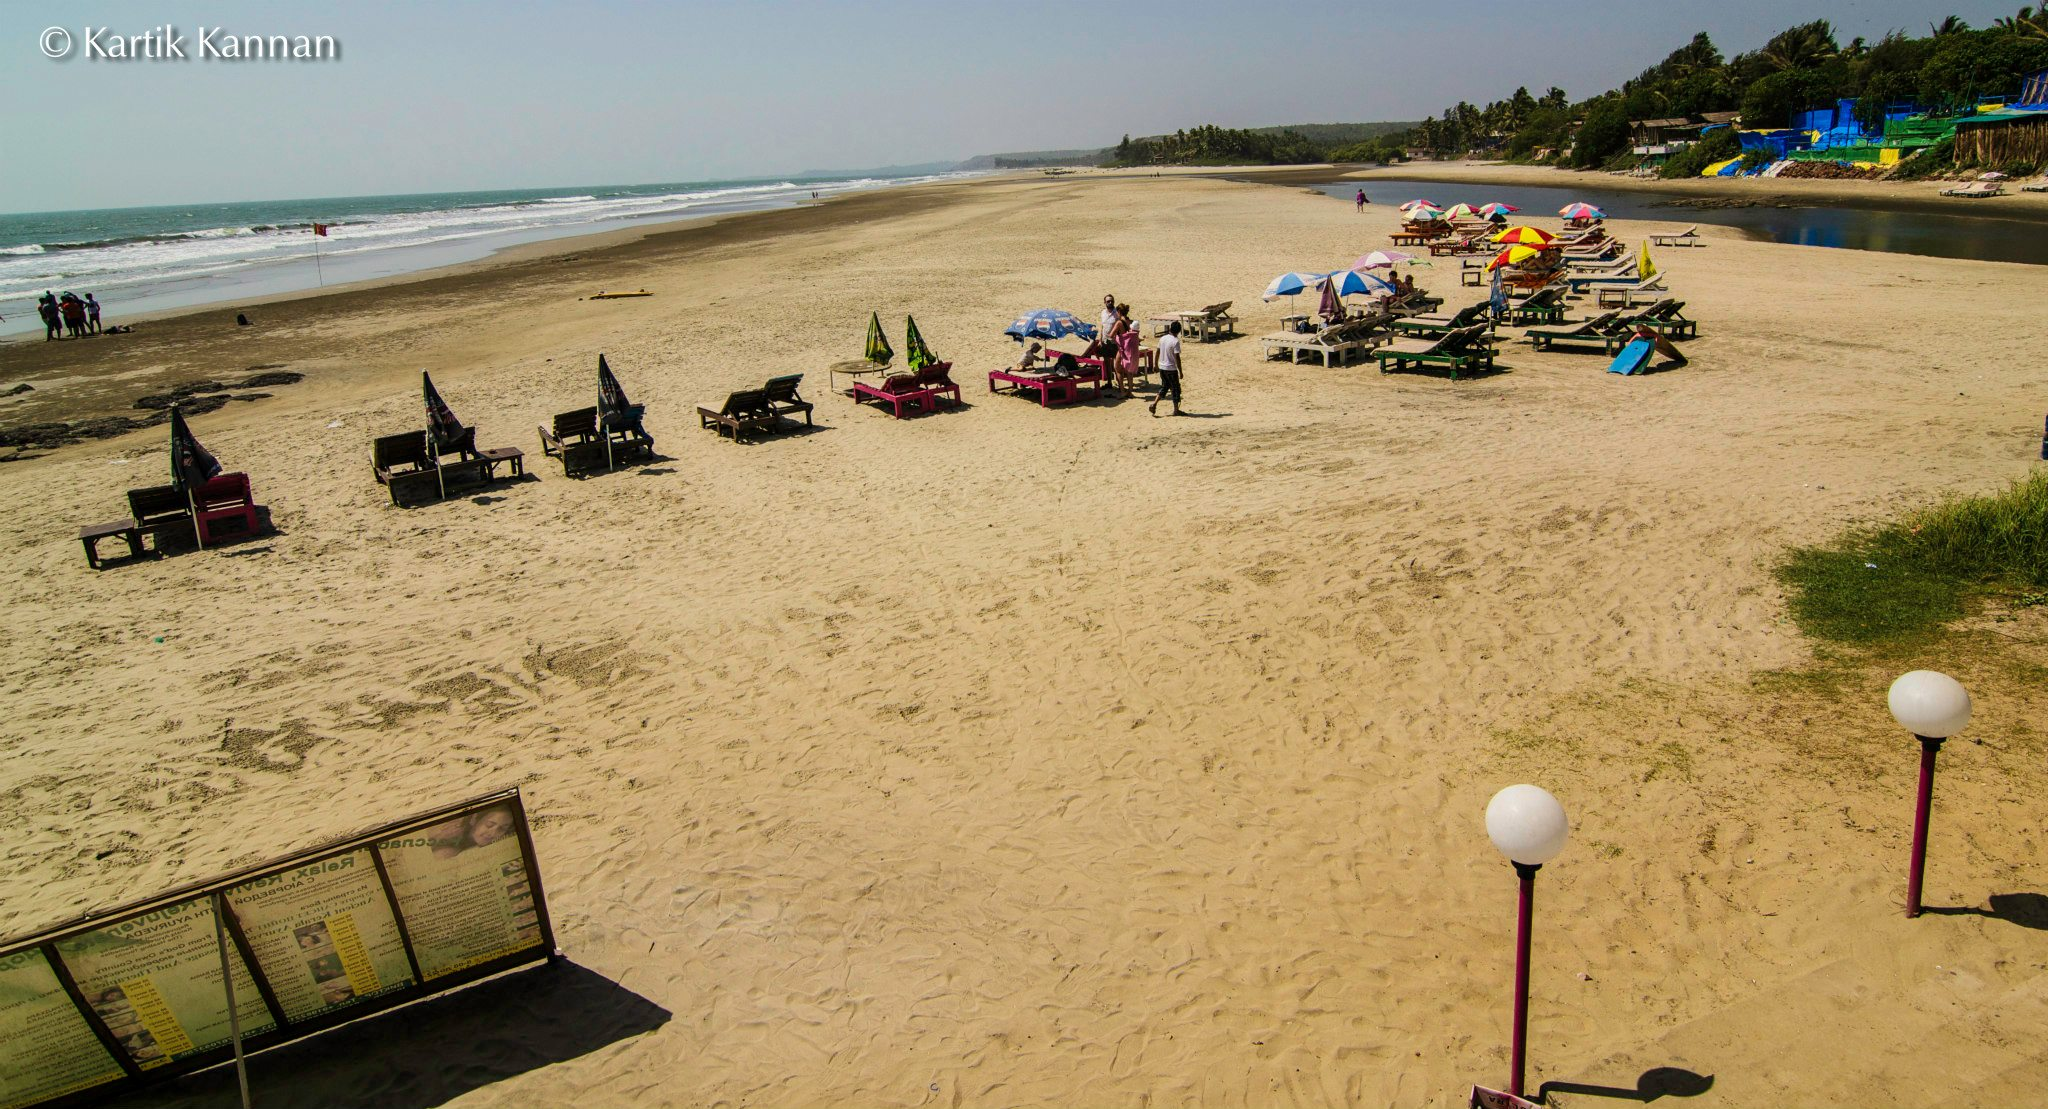 Aswem Beach in north Goa, 20 km's from Calangute (40 mins)